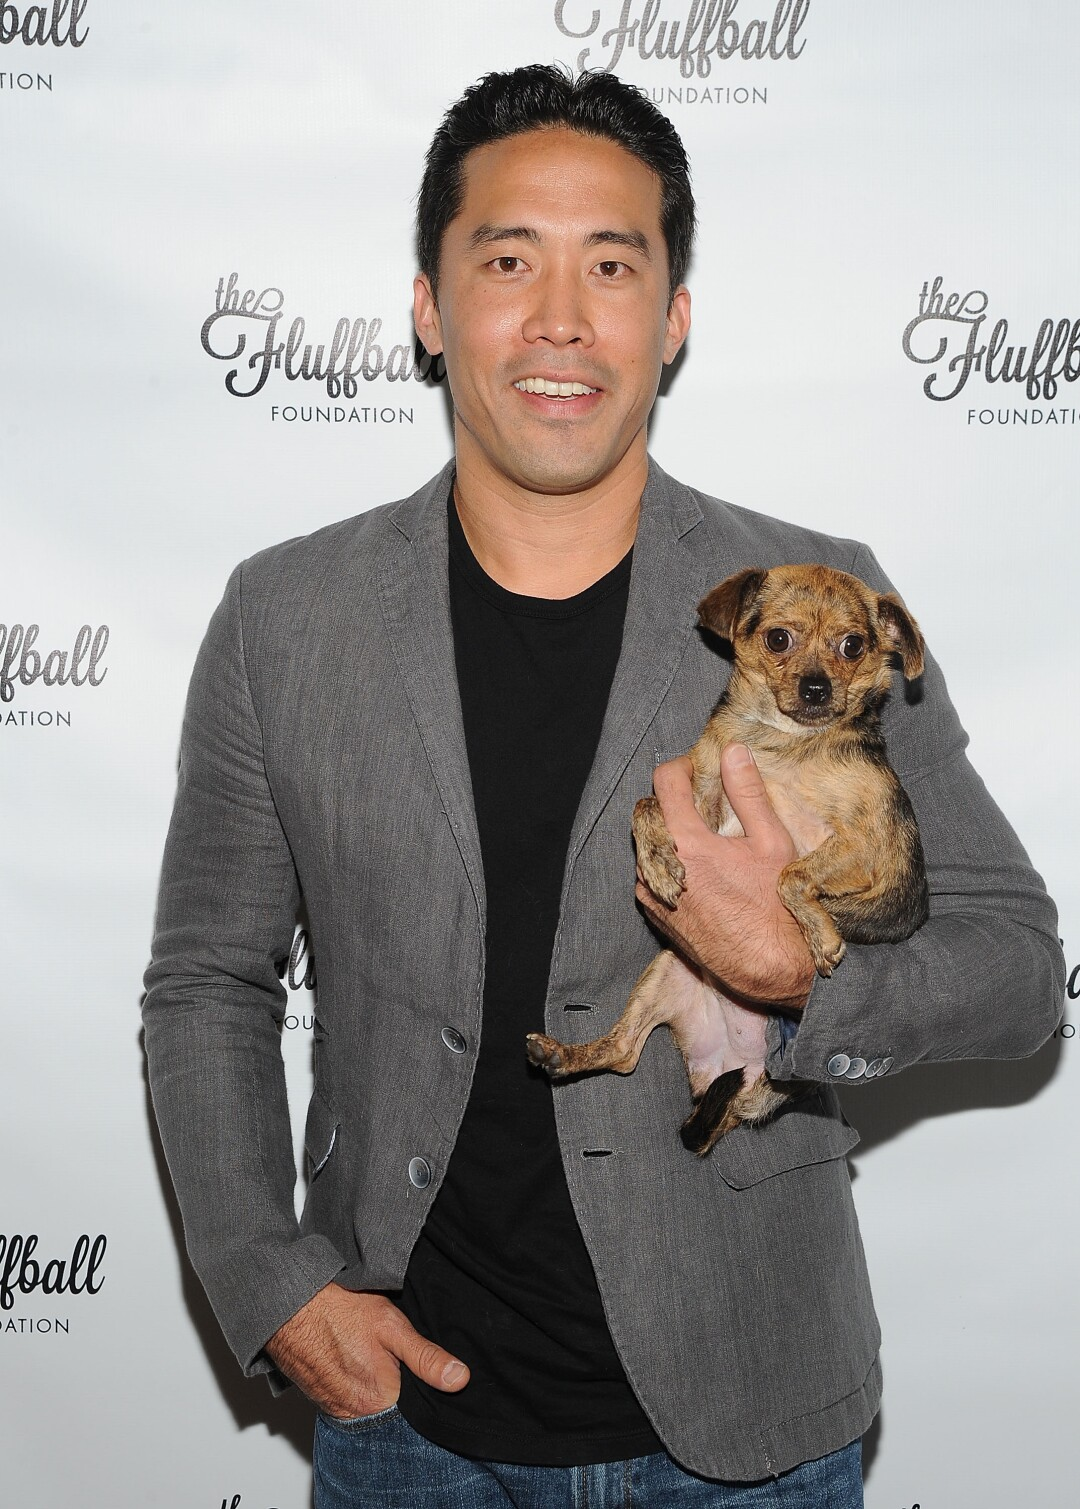 Marc Ching at a 2015 fundraiser event